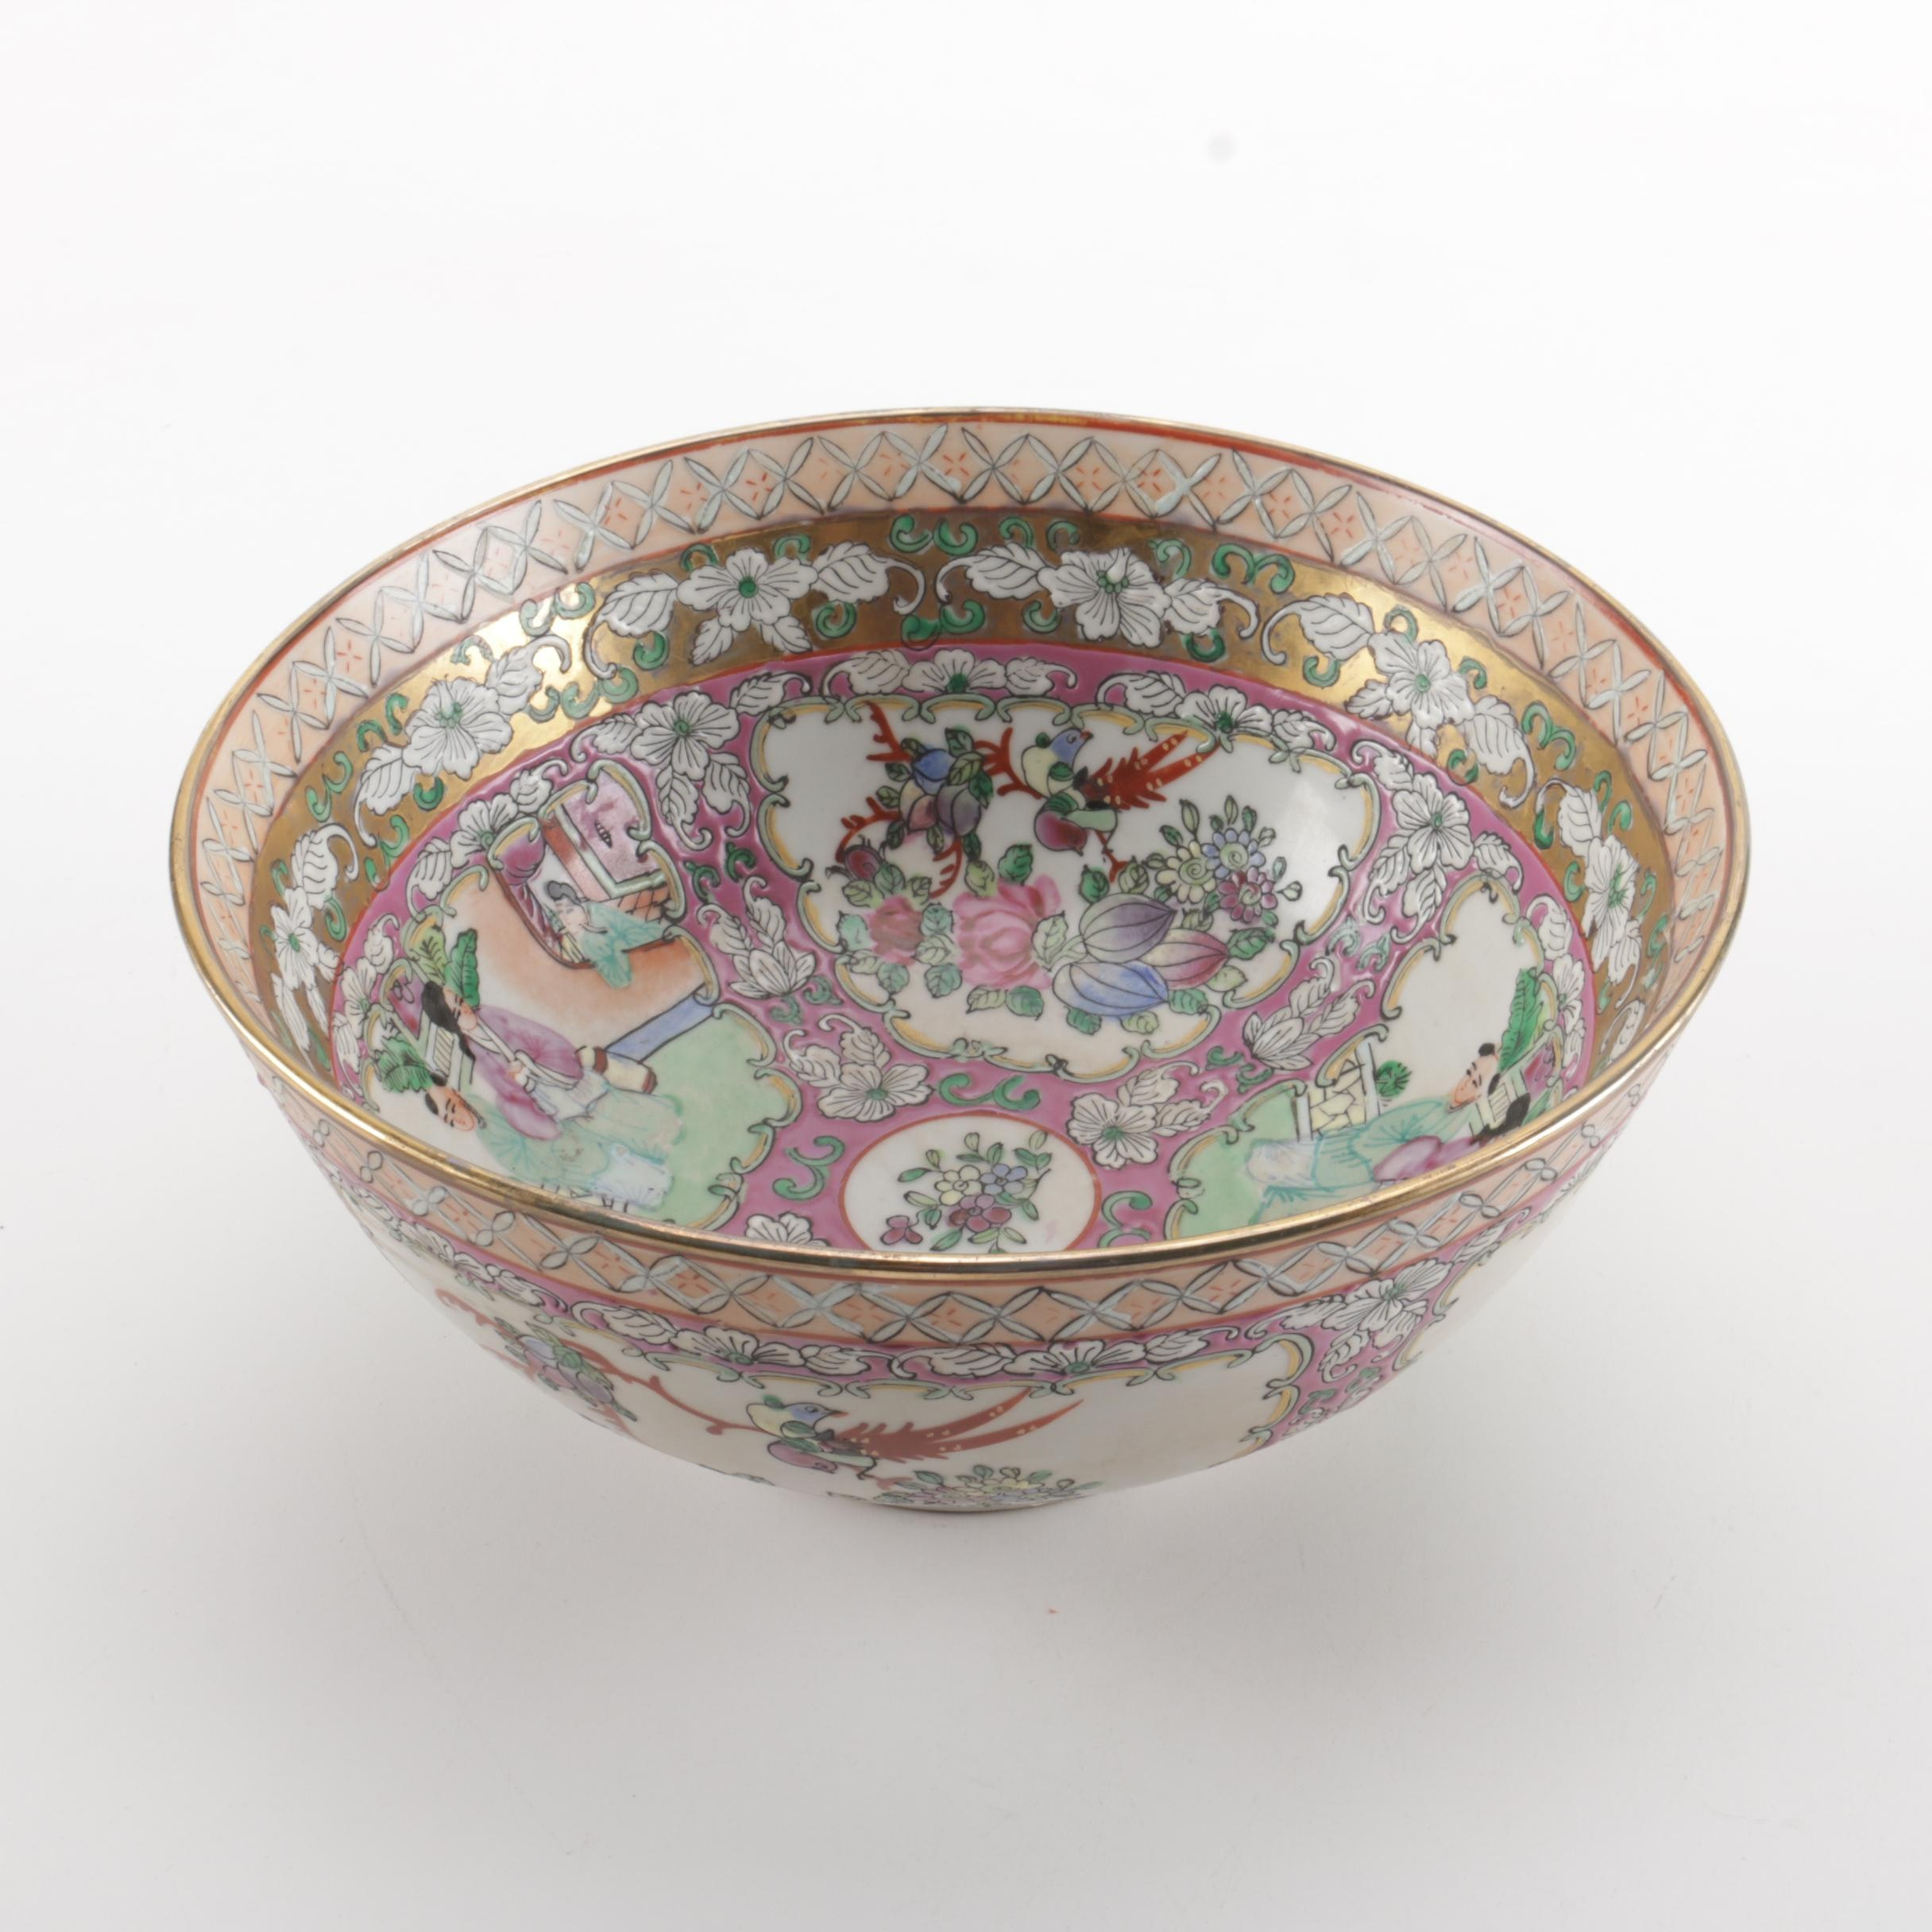 Asian Inspired Hand-Painted Ceramic Bowl